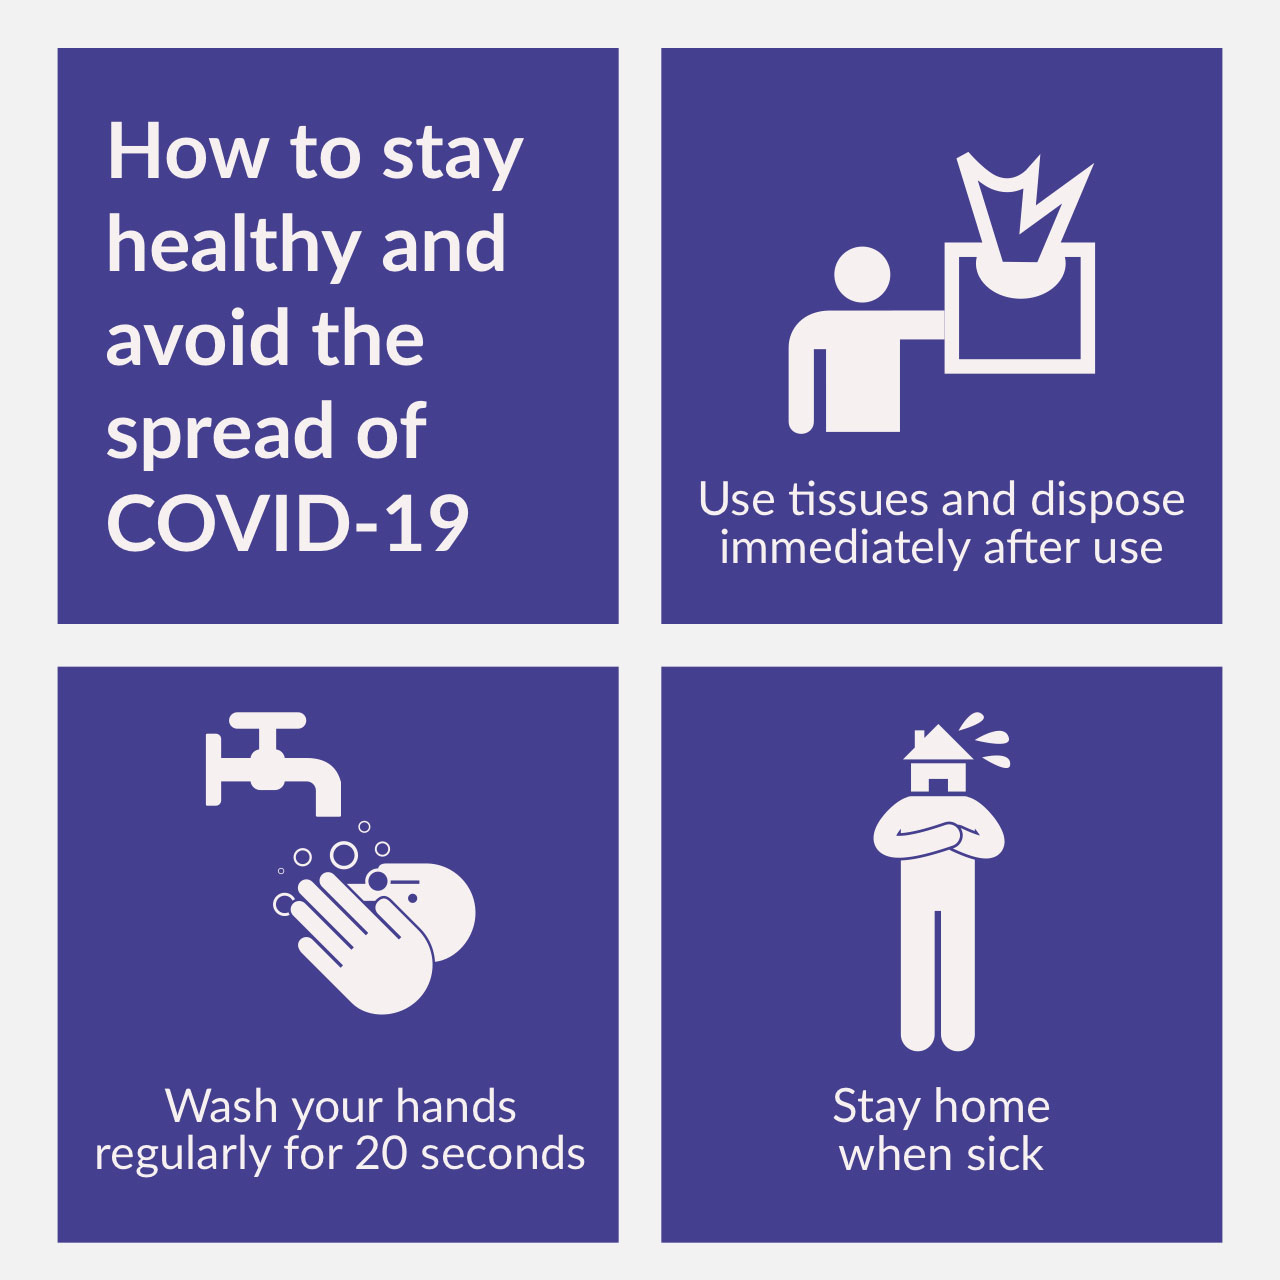 How to stay healthy and avoid the spread of COVID-19⁠